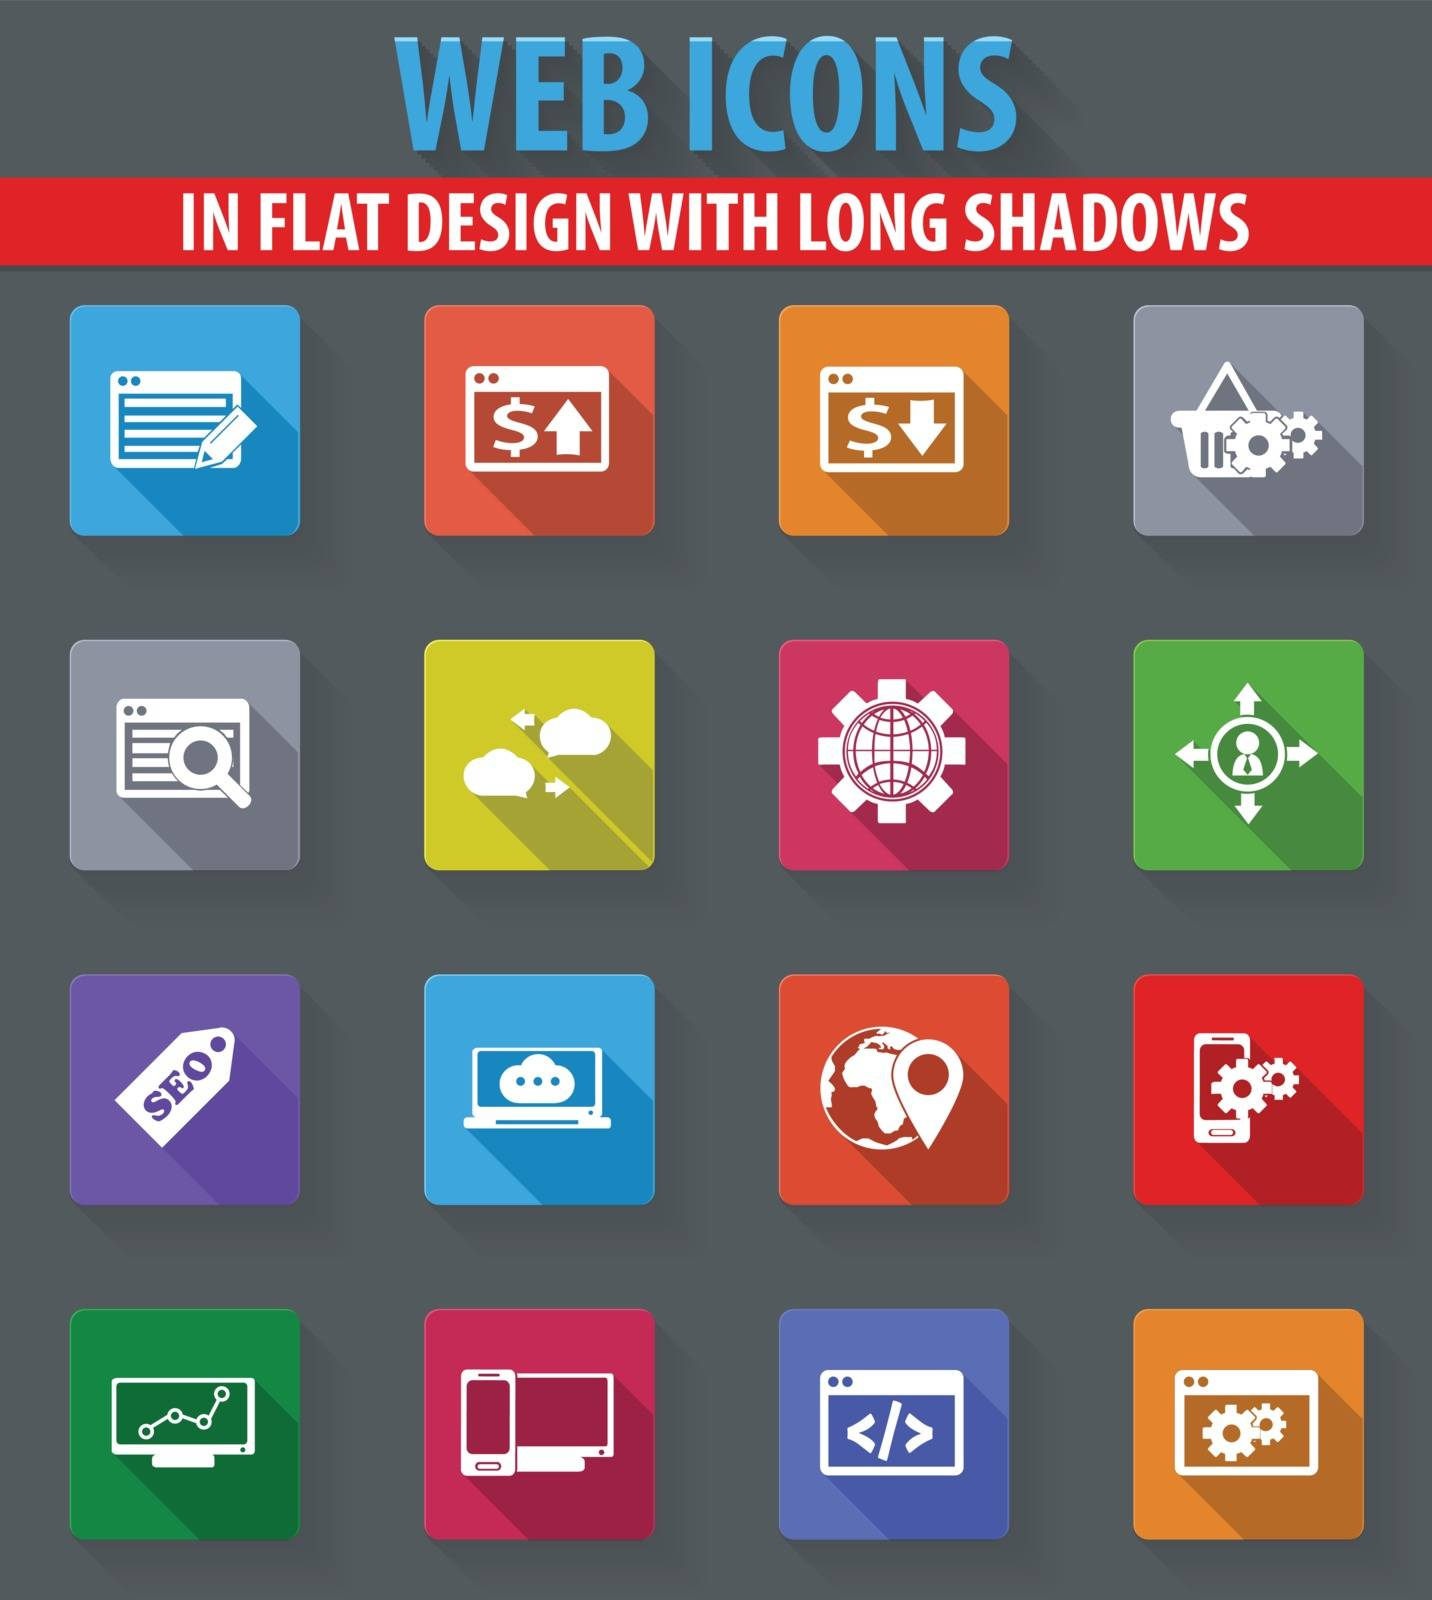 Set of SEO and Development web icons in flat design with long shadows